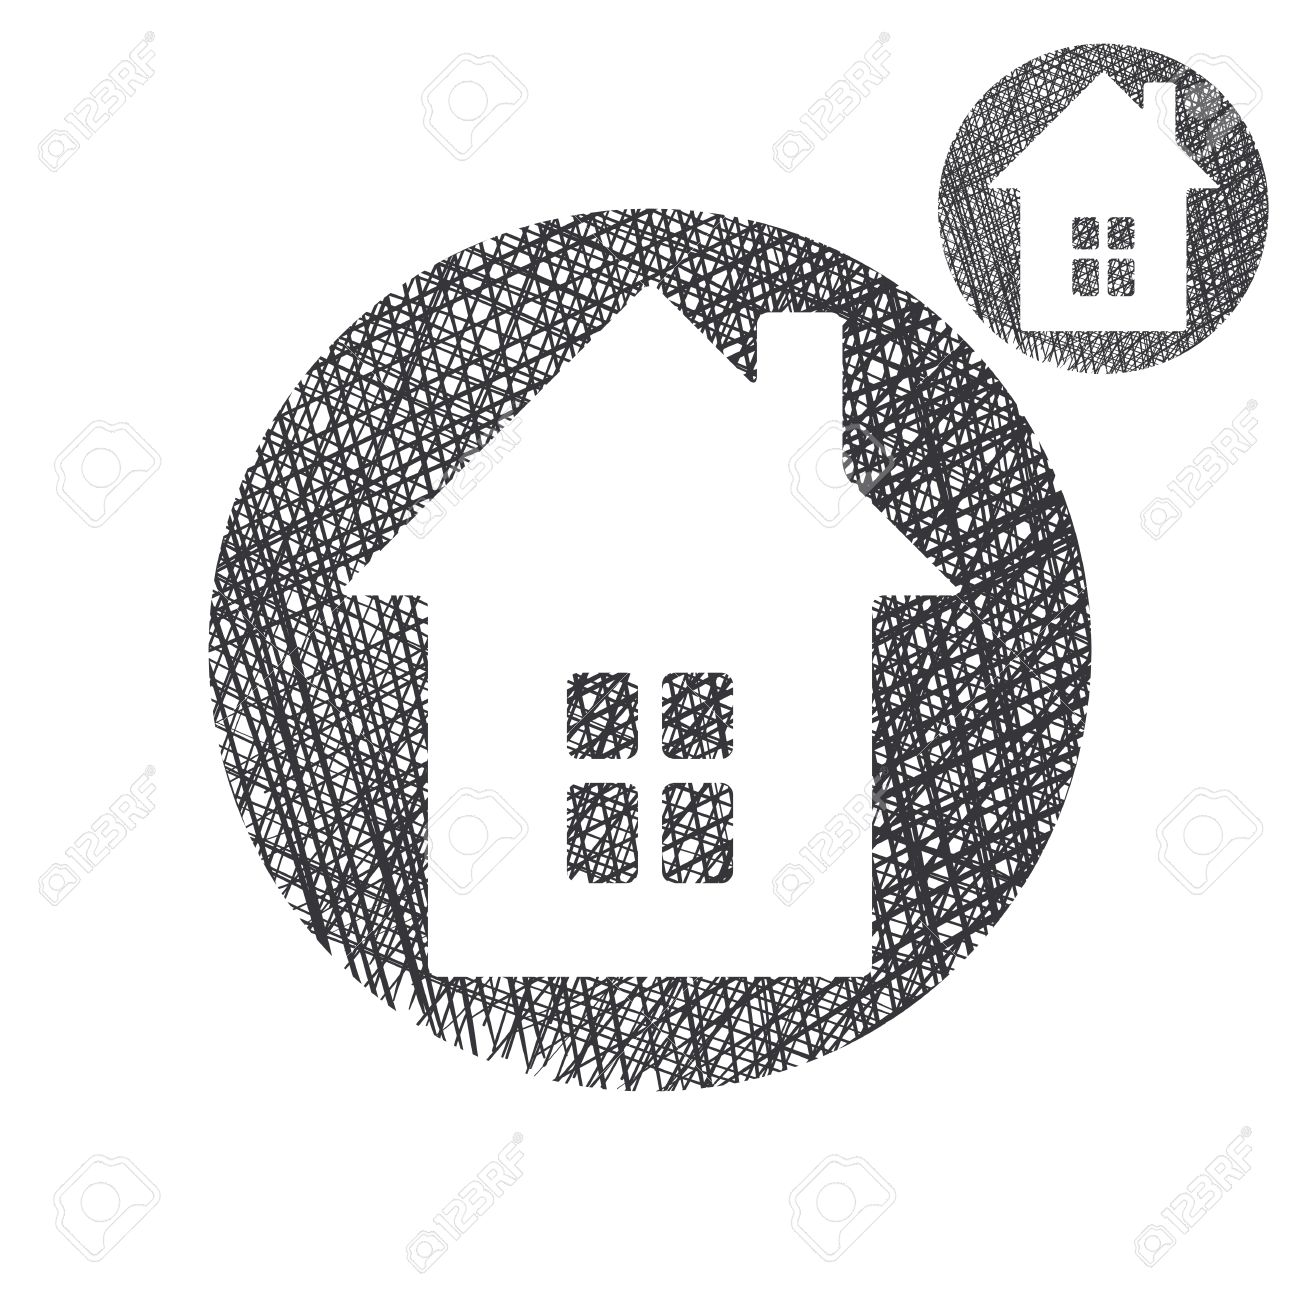 House simple single color icon isolated on white background with sketch lined hand drawn texture